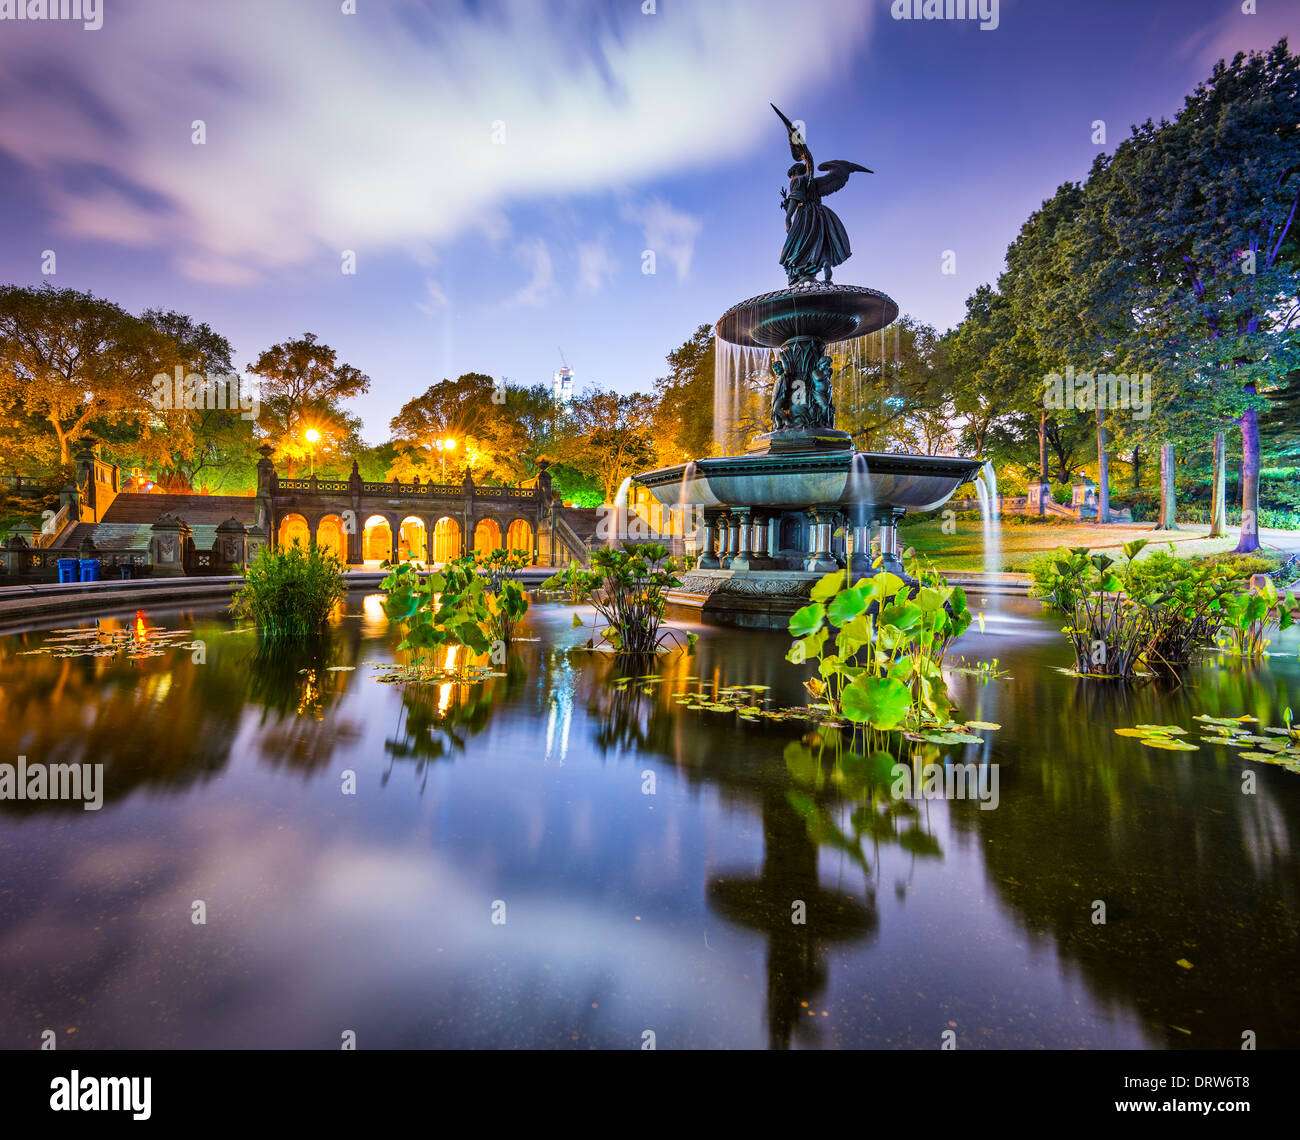 New York City at Bethesda Terrace in Central Park. - Stock Image